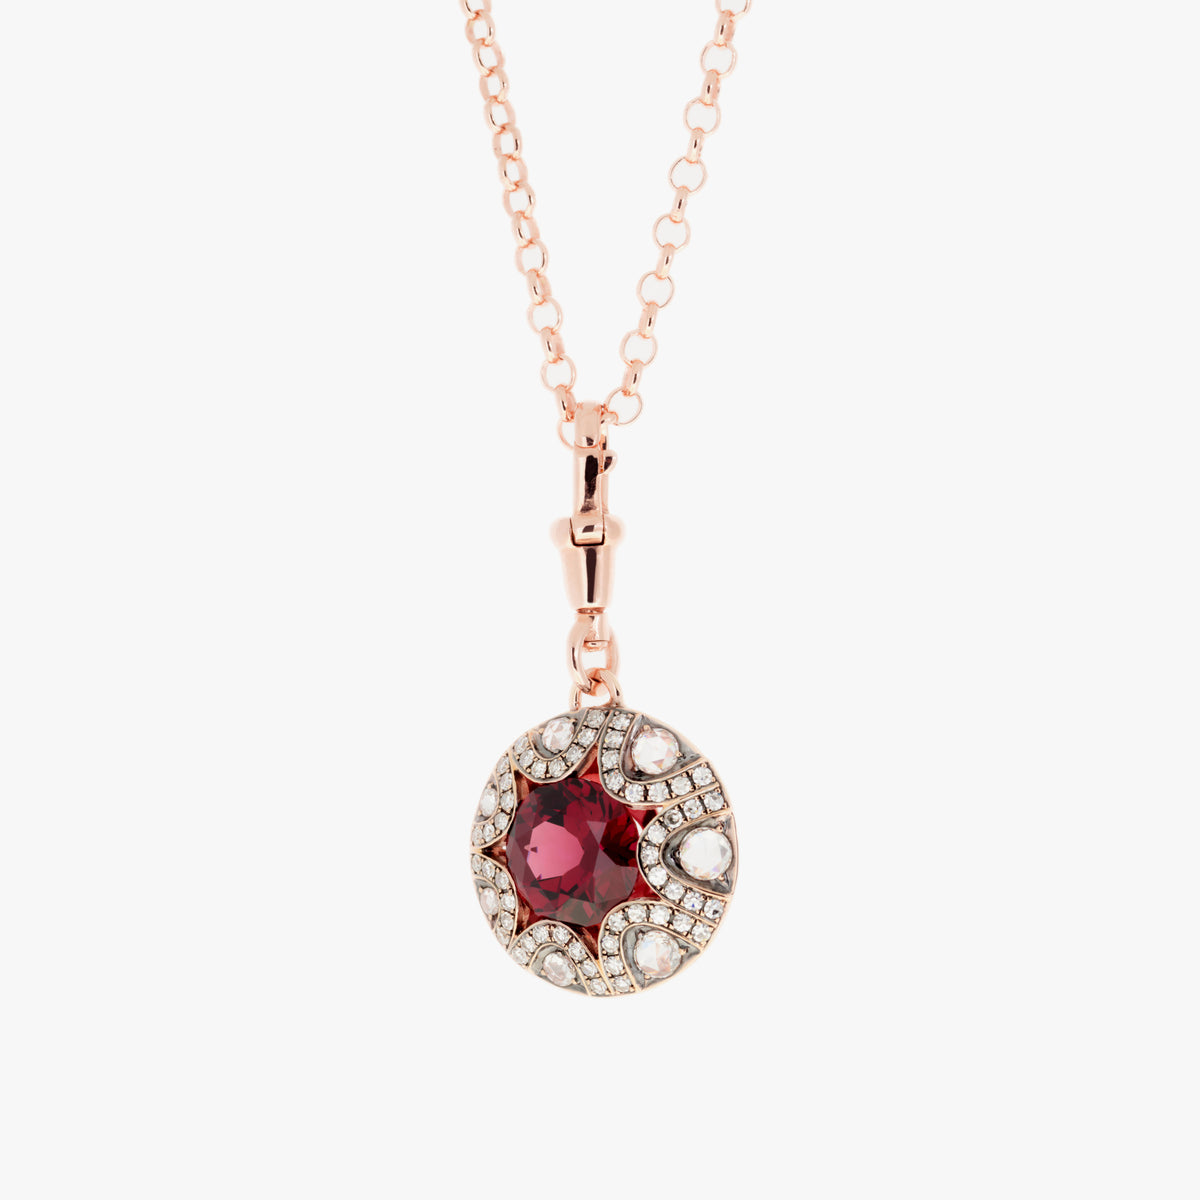 Mille et une nuits Pendant with Diamonds and Rhodolites